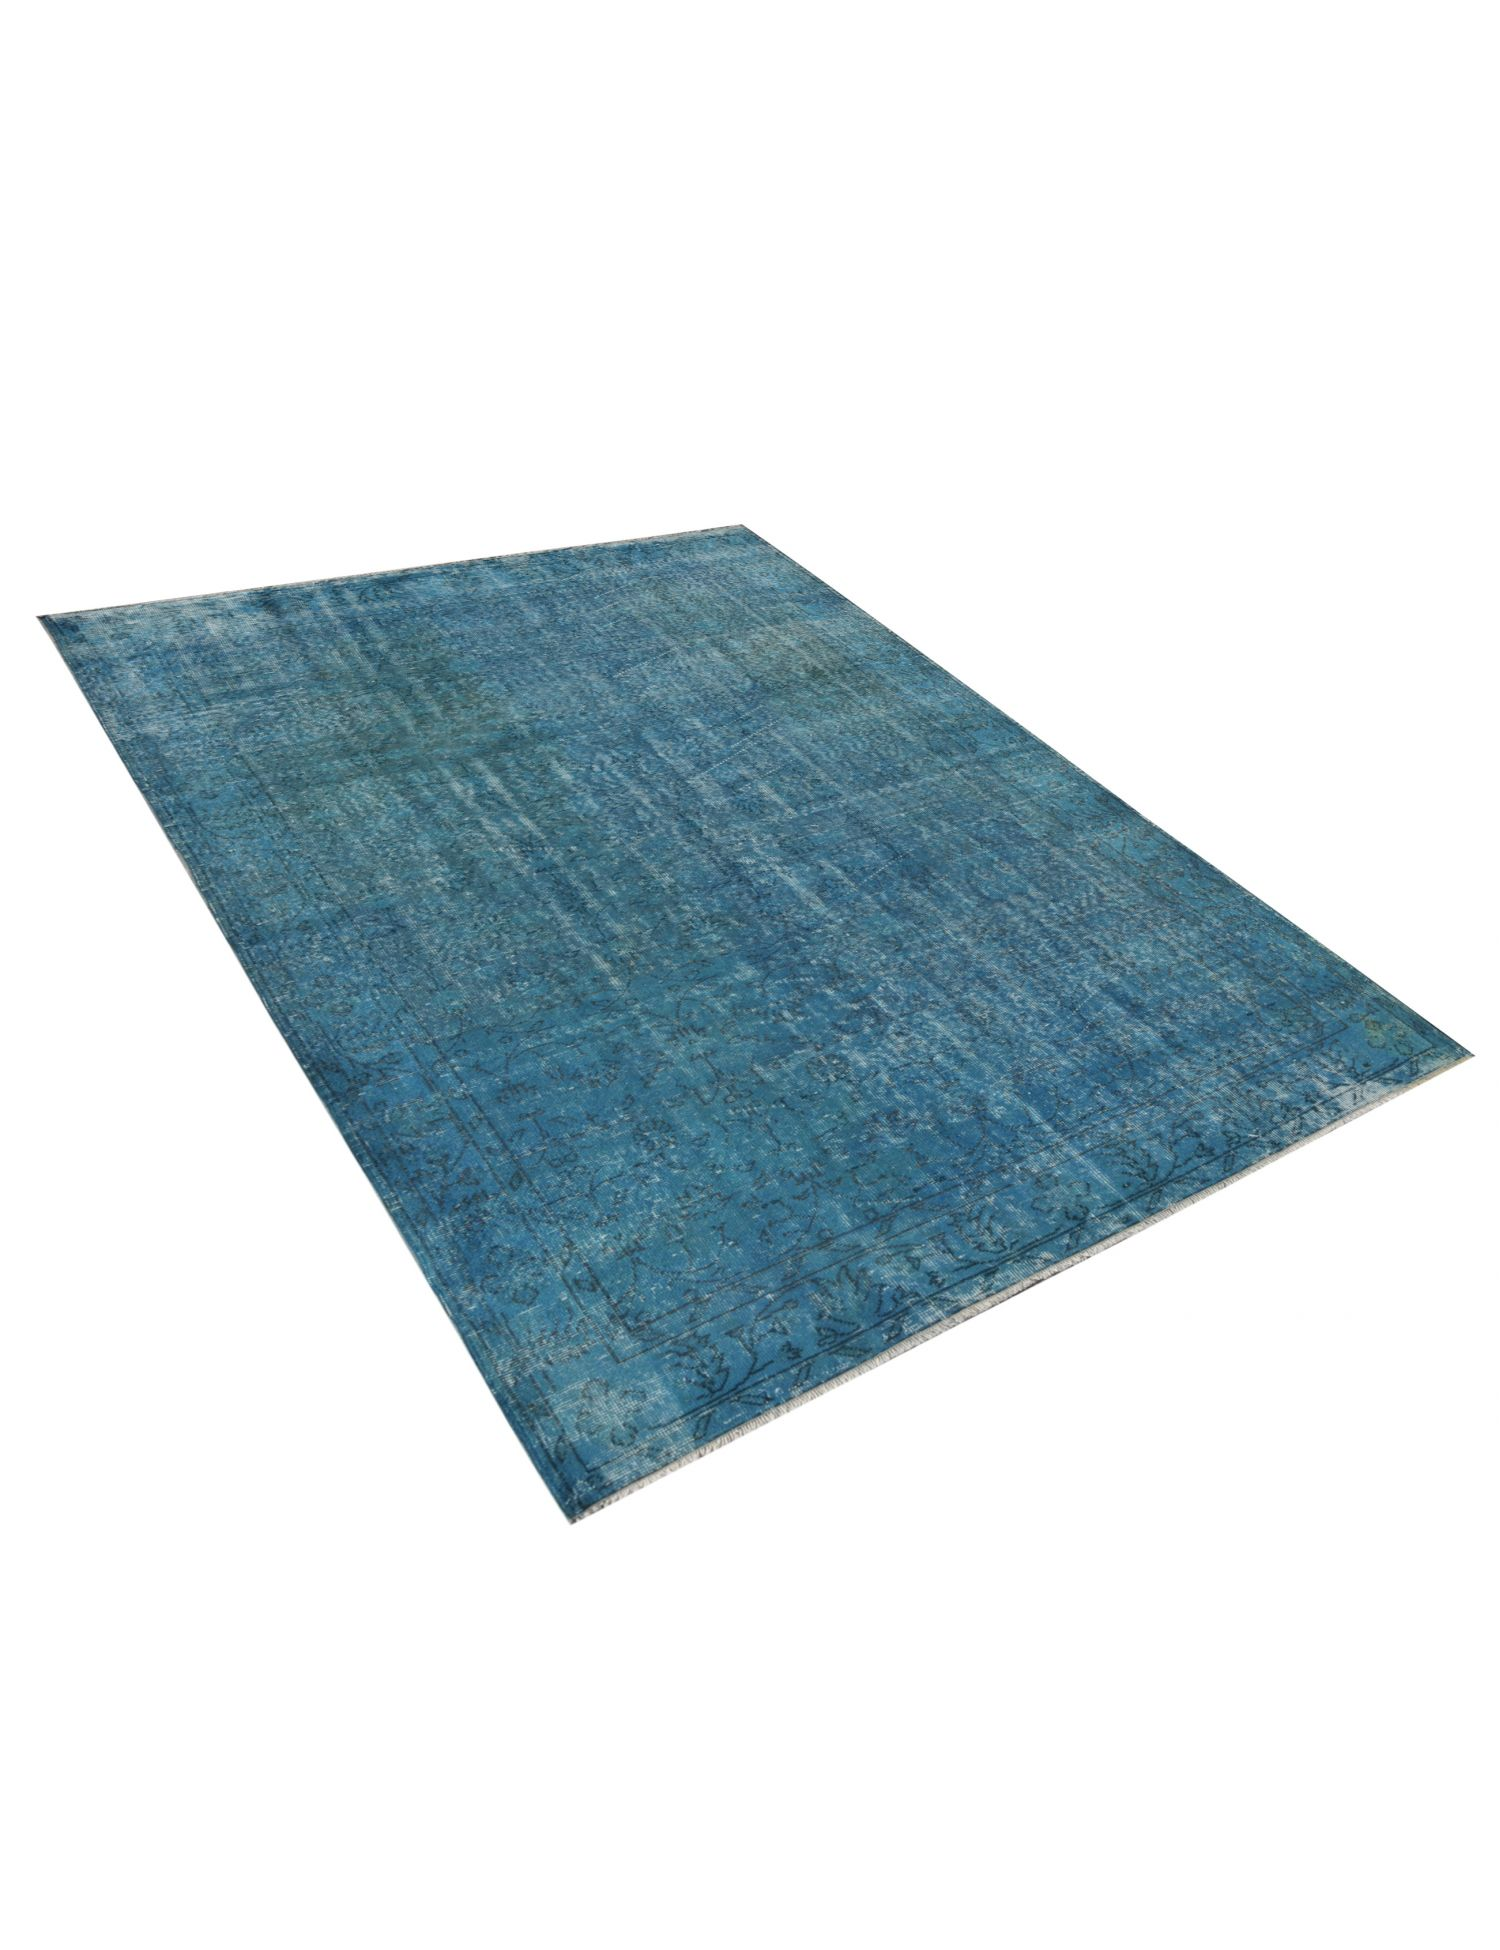 Vintage Carpet  blue <br/>284 x 178 cm